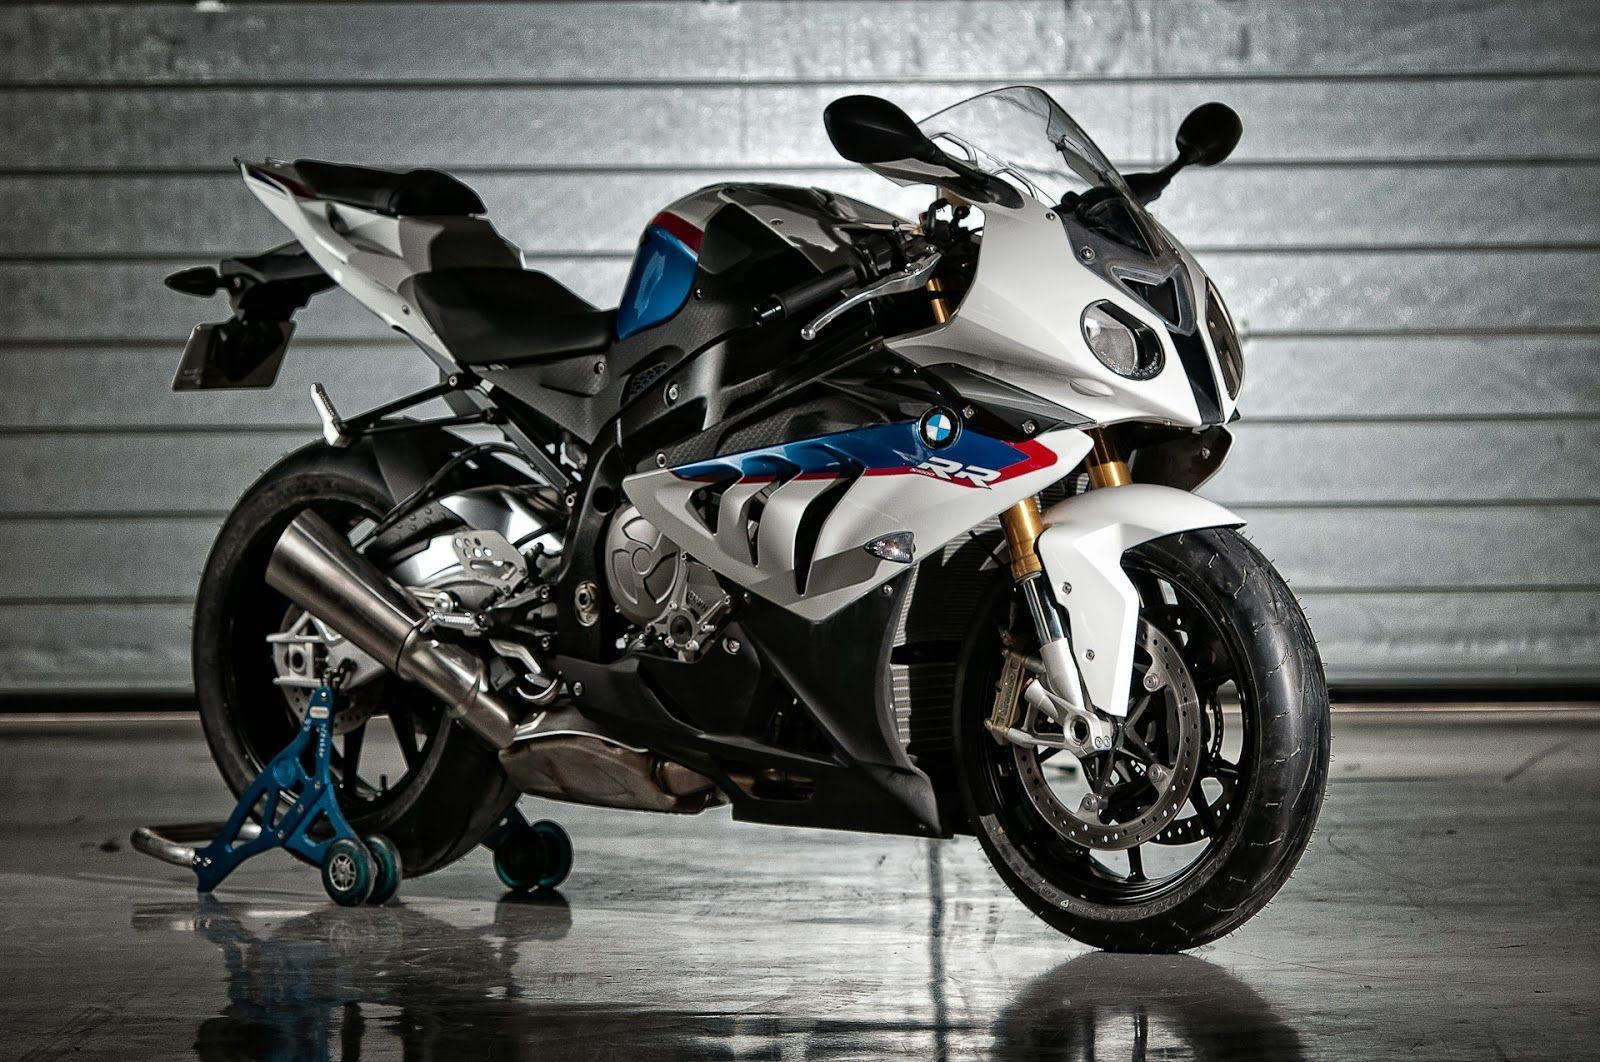 Superbike Hd Wallpaper Full Screen: BMW S1000RR Wallpapers